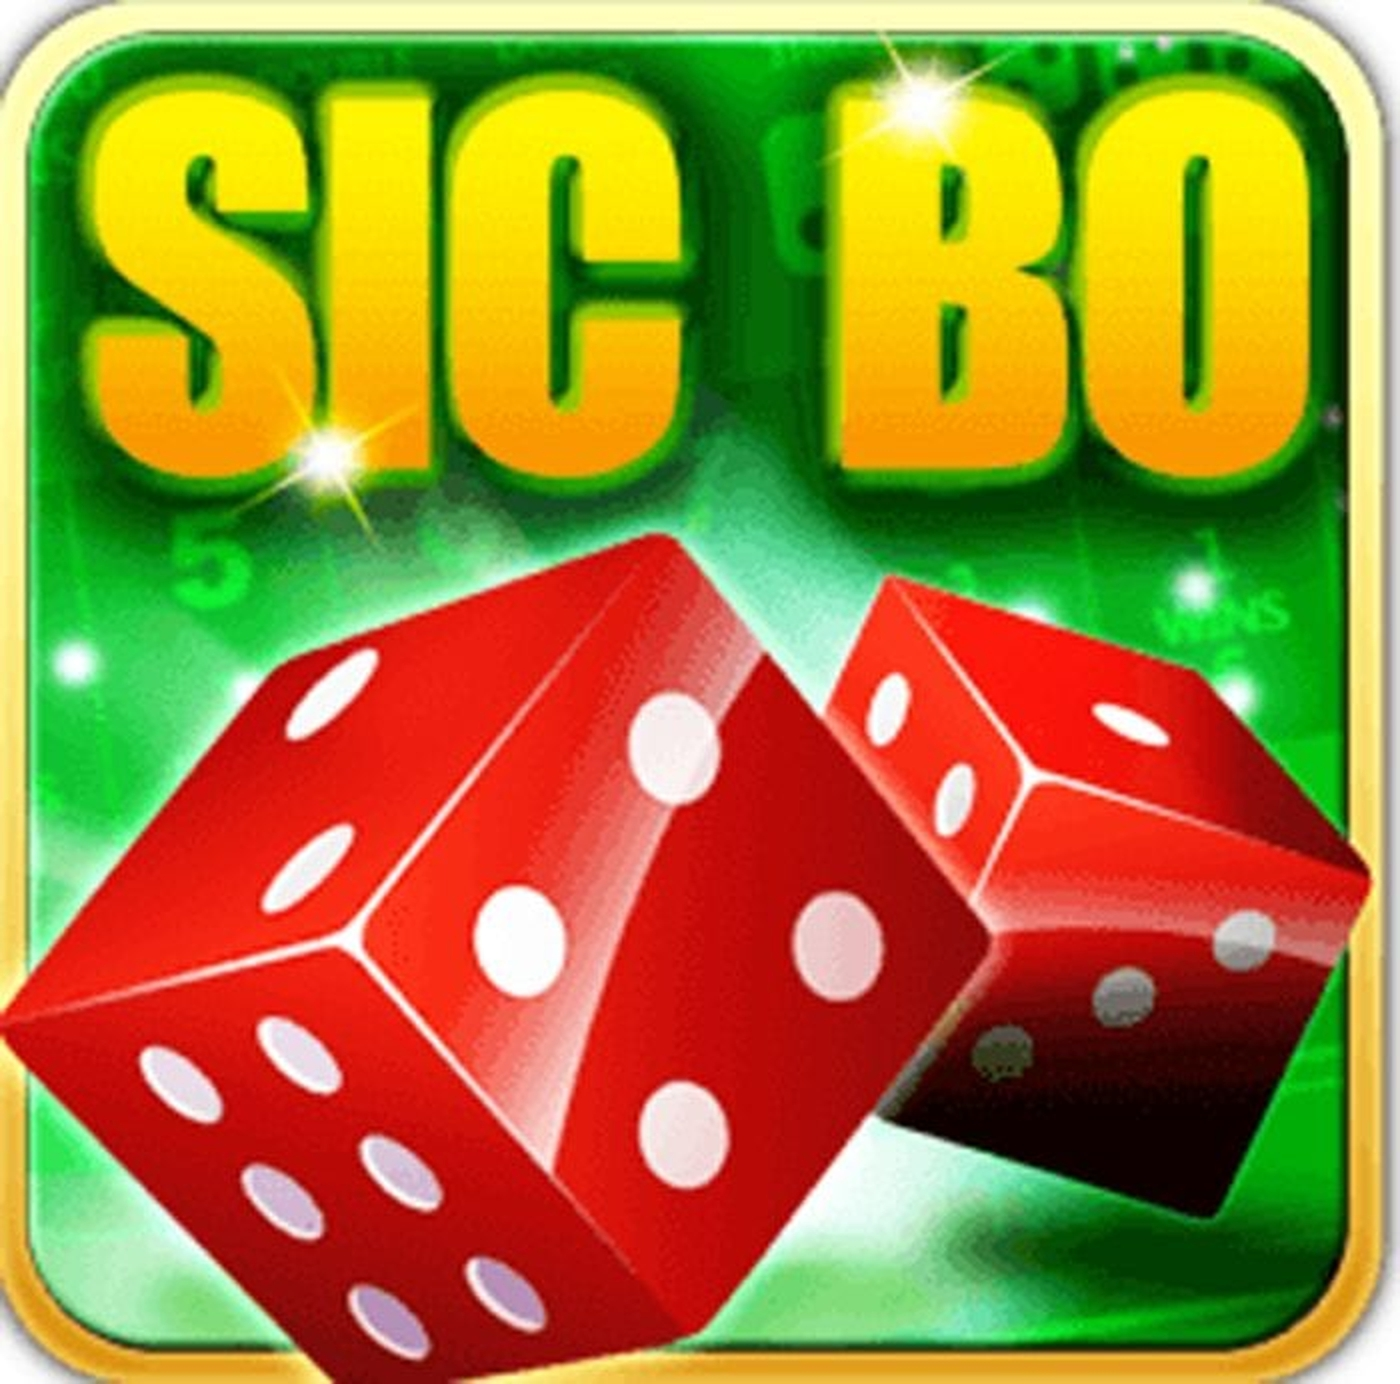 The Sicbo Australia Online Slot Demo Game by Inbet Games